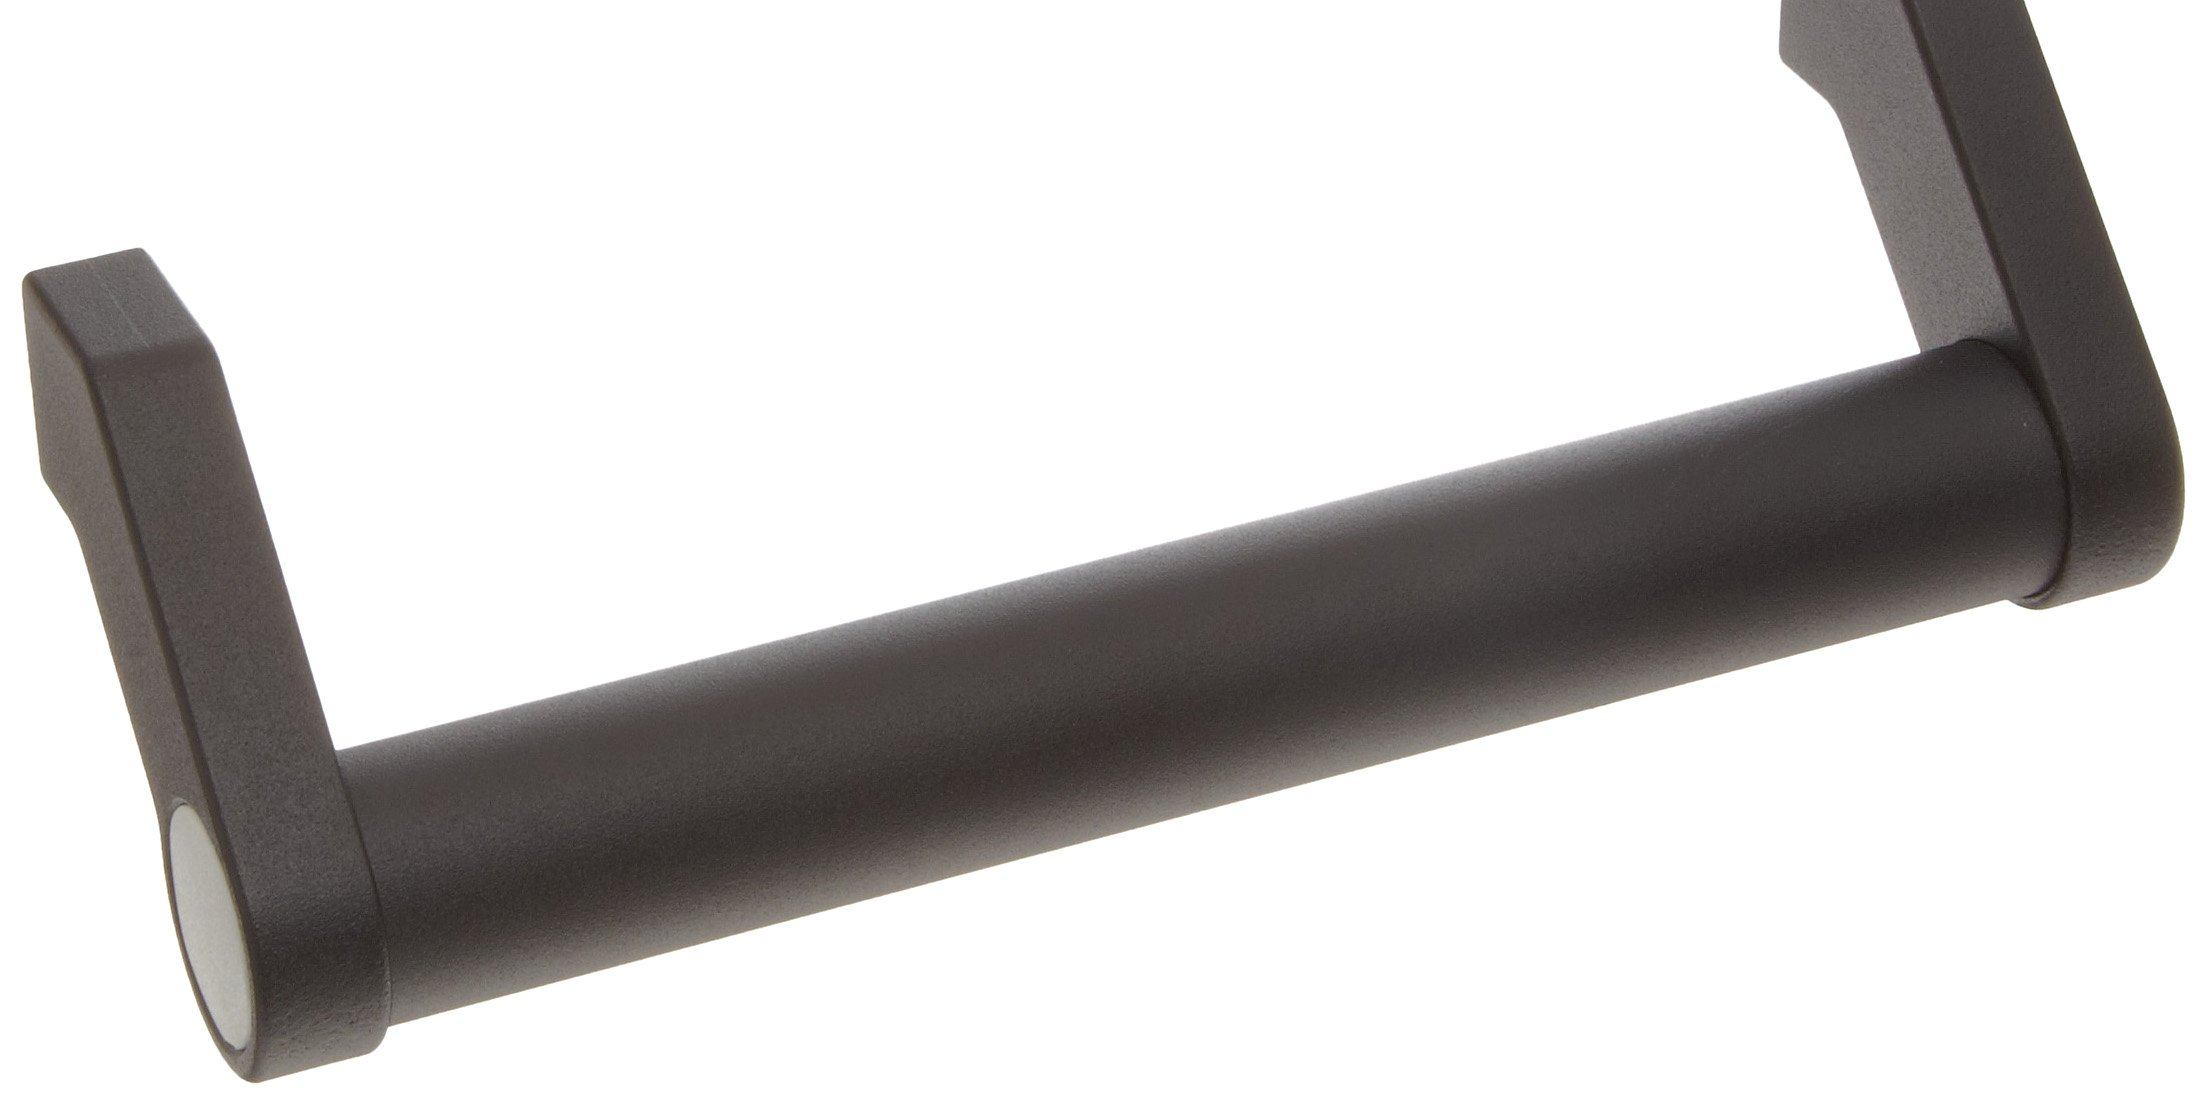 """Aluminum Offset Pull Handle with Threaded Holes, Round Grip, Black Powder Coated Finish, 8"""" Center-to-Center, 2-19/32"""" Projection, 1-3/32"""" Grip Size (Pack of 1)"""